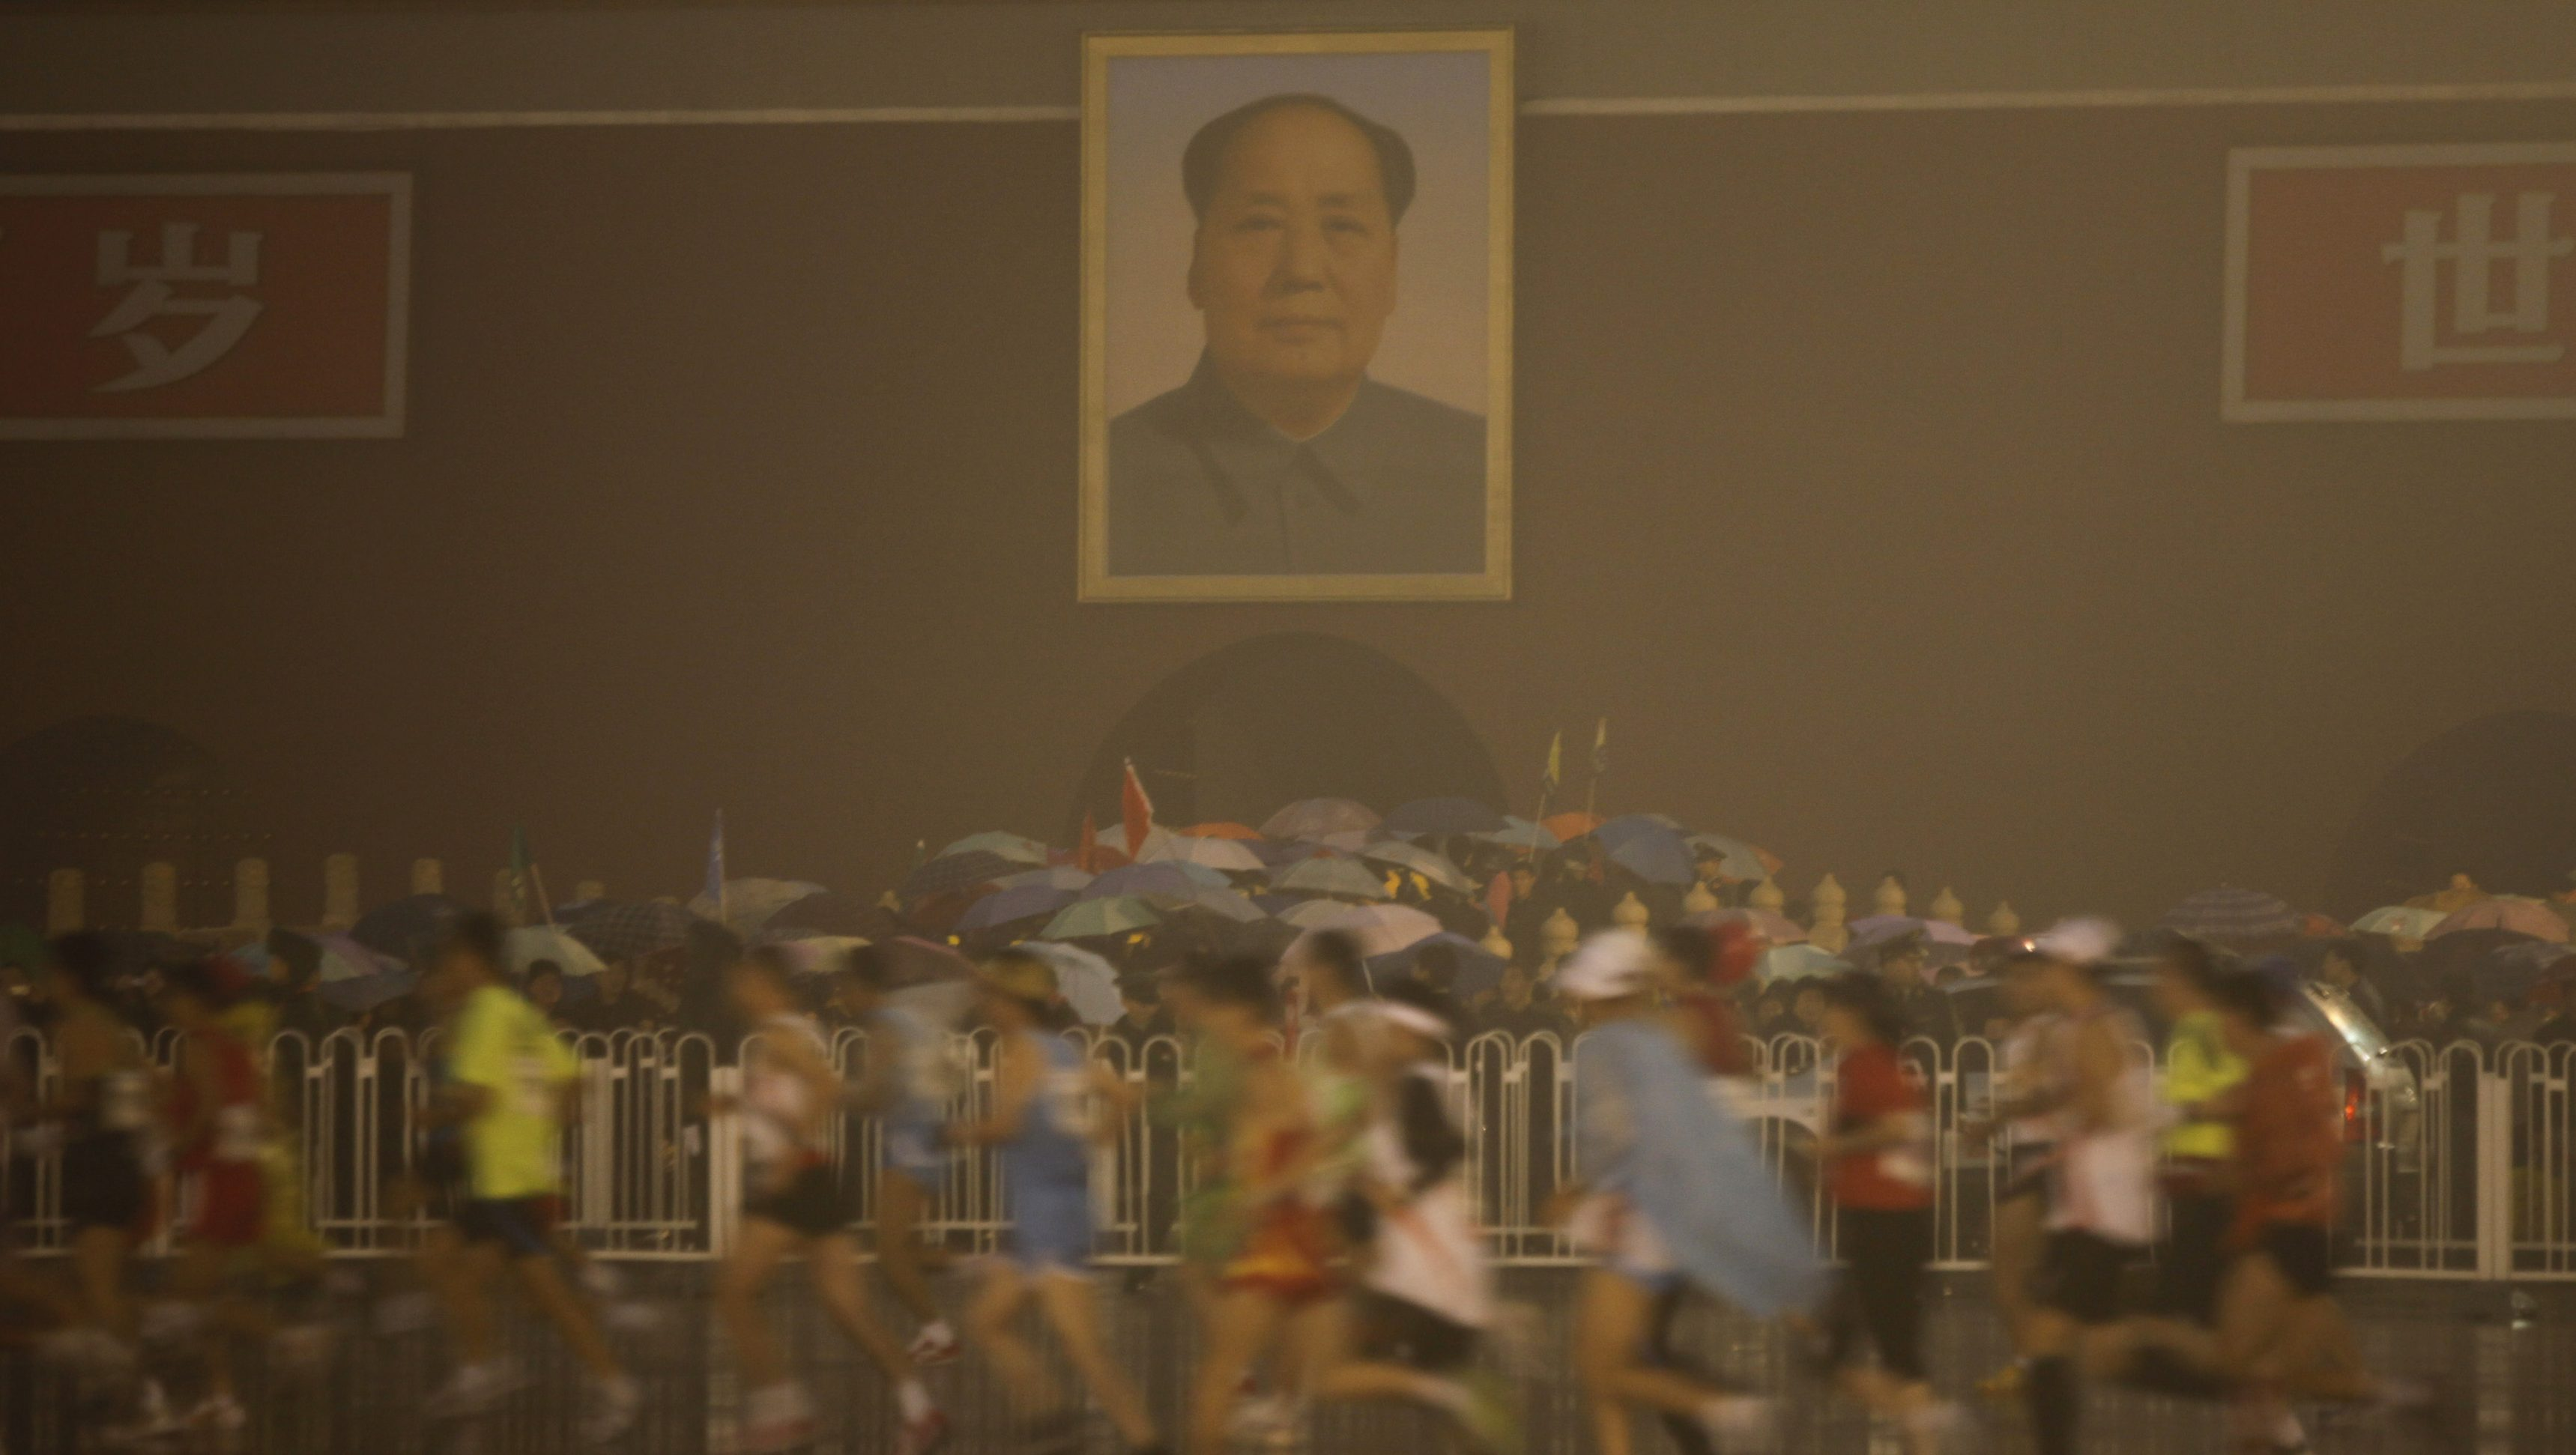 Participants run past the Tiananmen Gate in front of the portrait of late Chinese leader Mao Zedong during the 2010 Beijing Marathon on a rainy day in Beijing October 24, 2010. REUTERS/Grace Liang